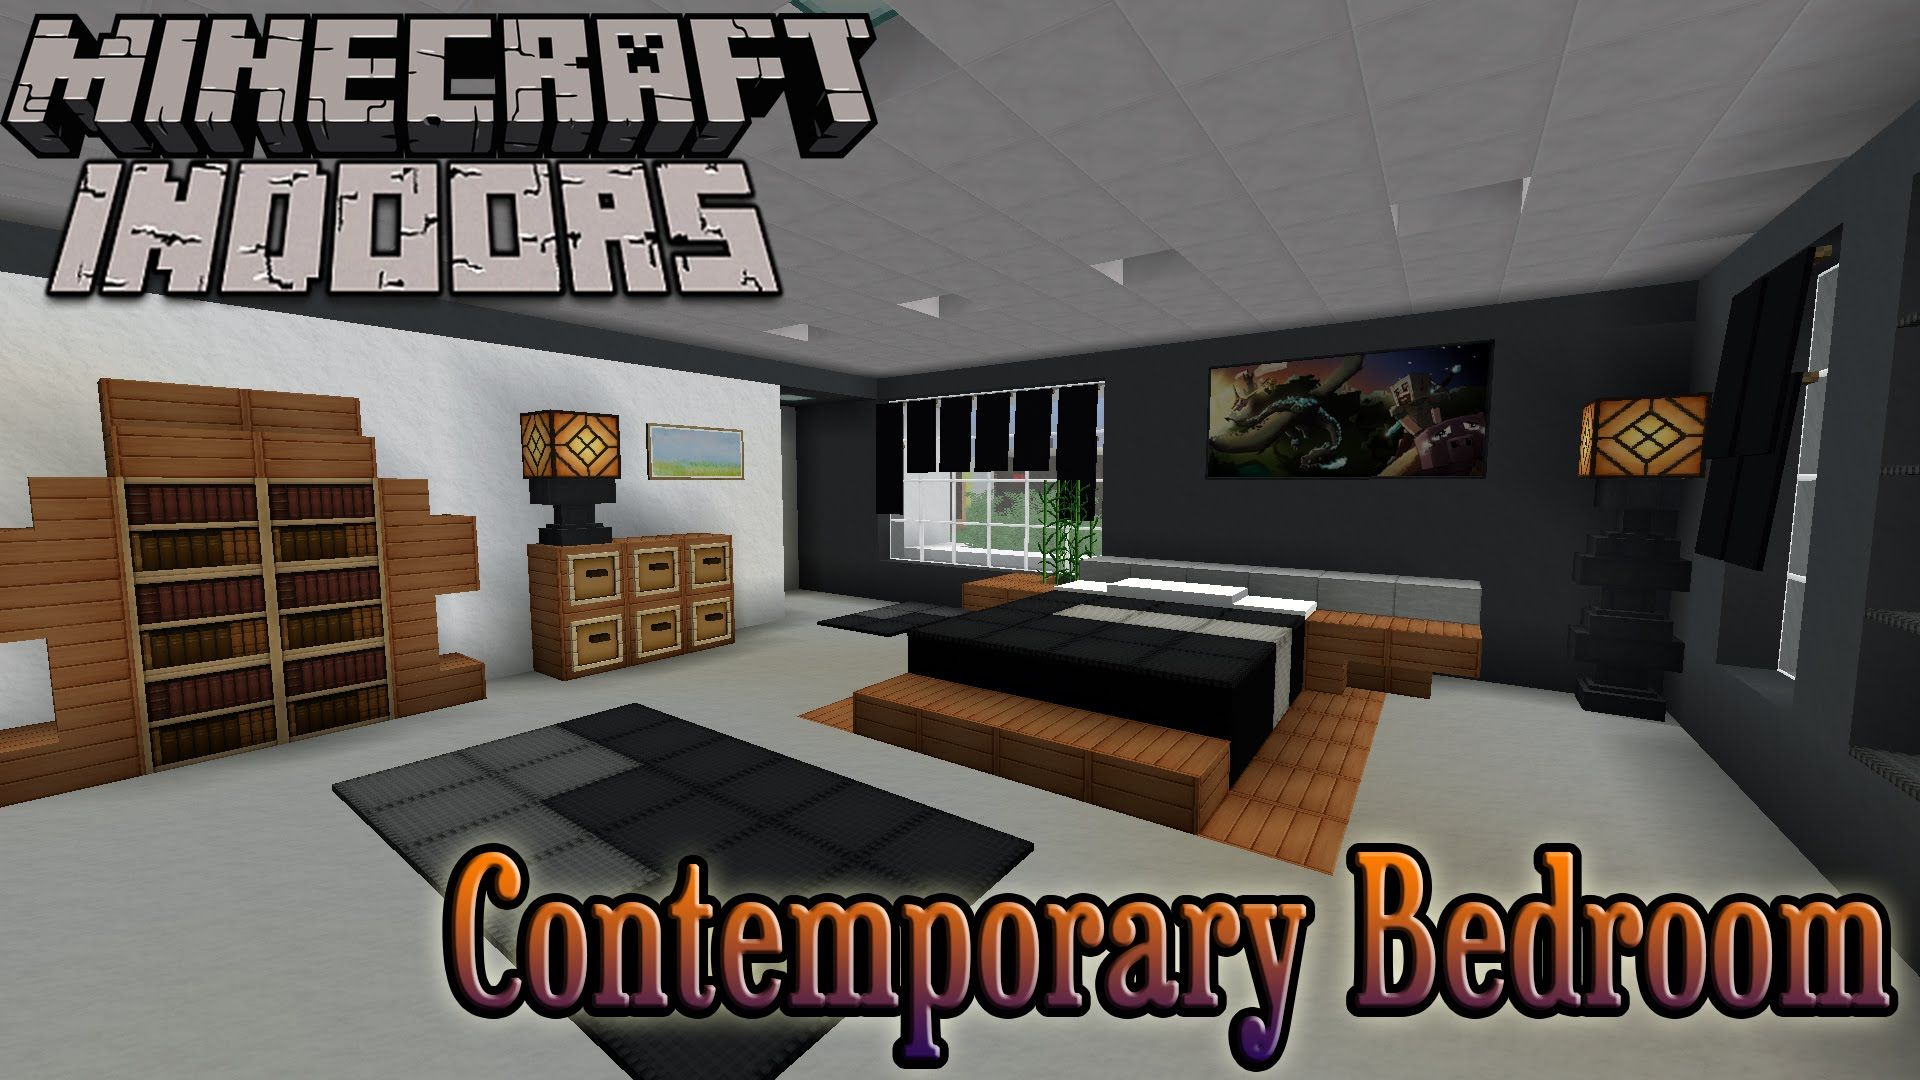 minecraft bedroom ideas - Google Search | Minecraft room ...